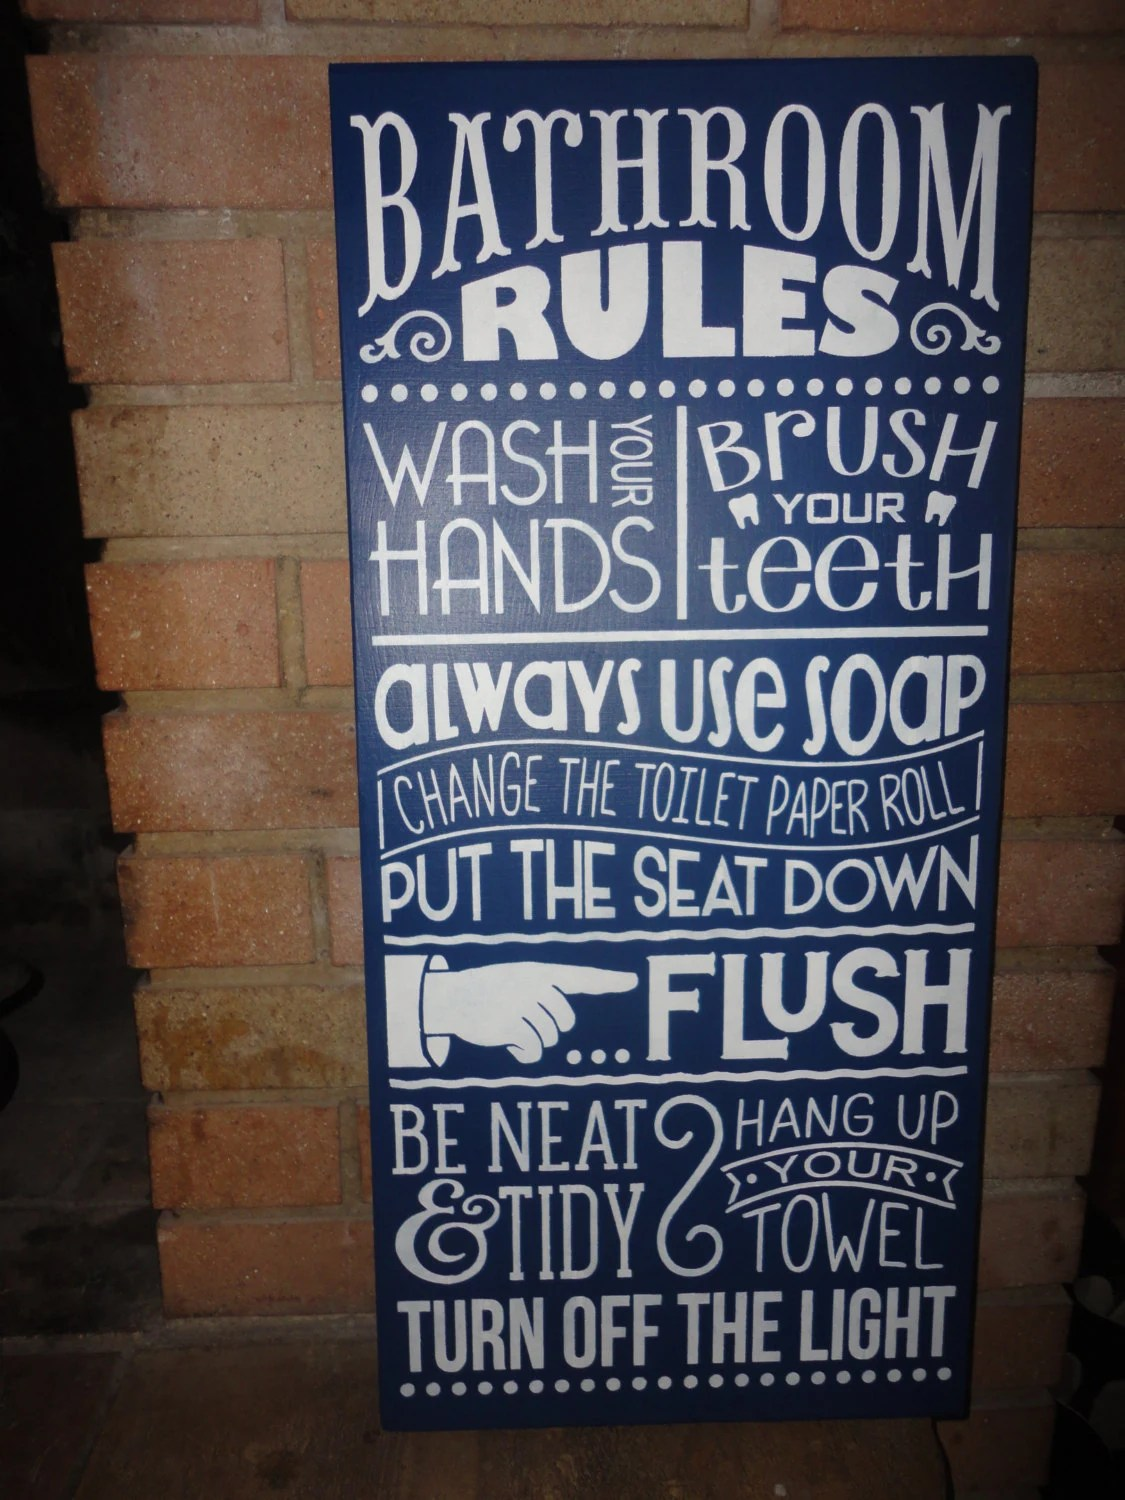 Navy BATHROOM Sign Home Decor SignBathroom Rules Hand